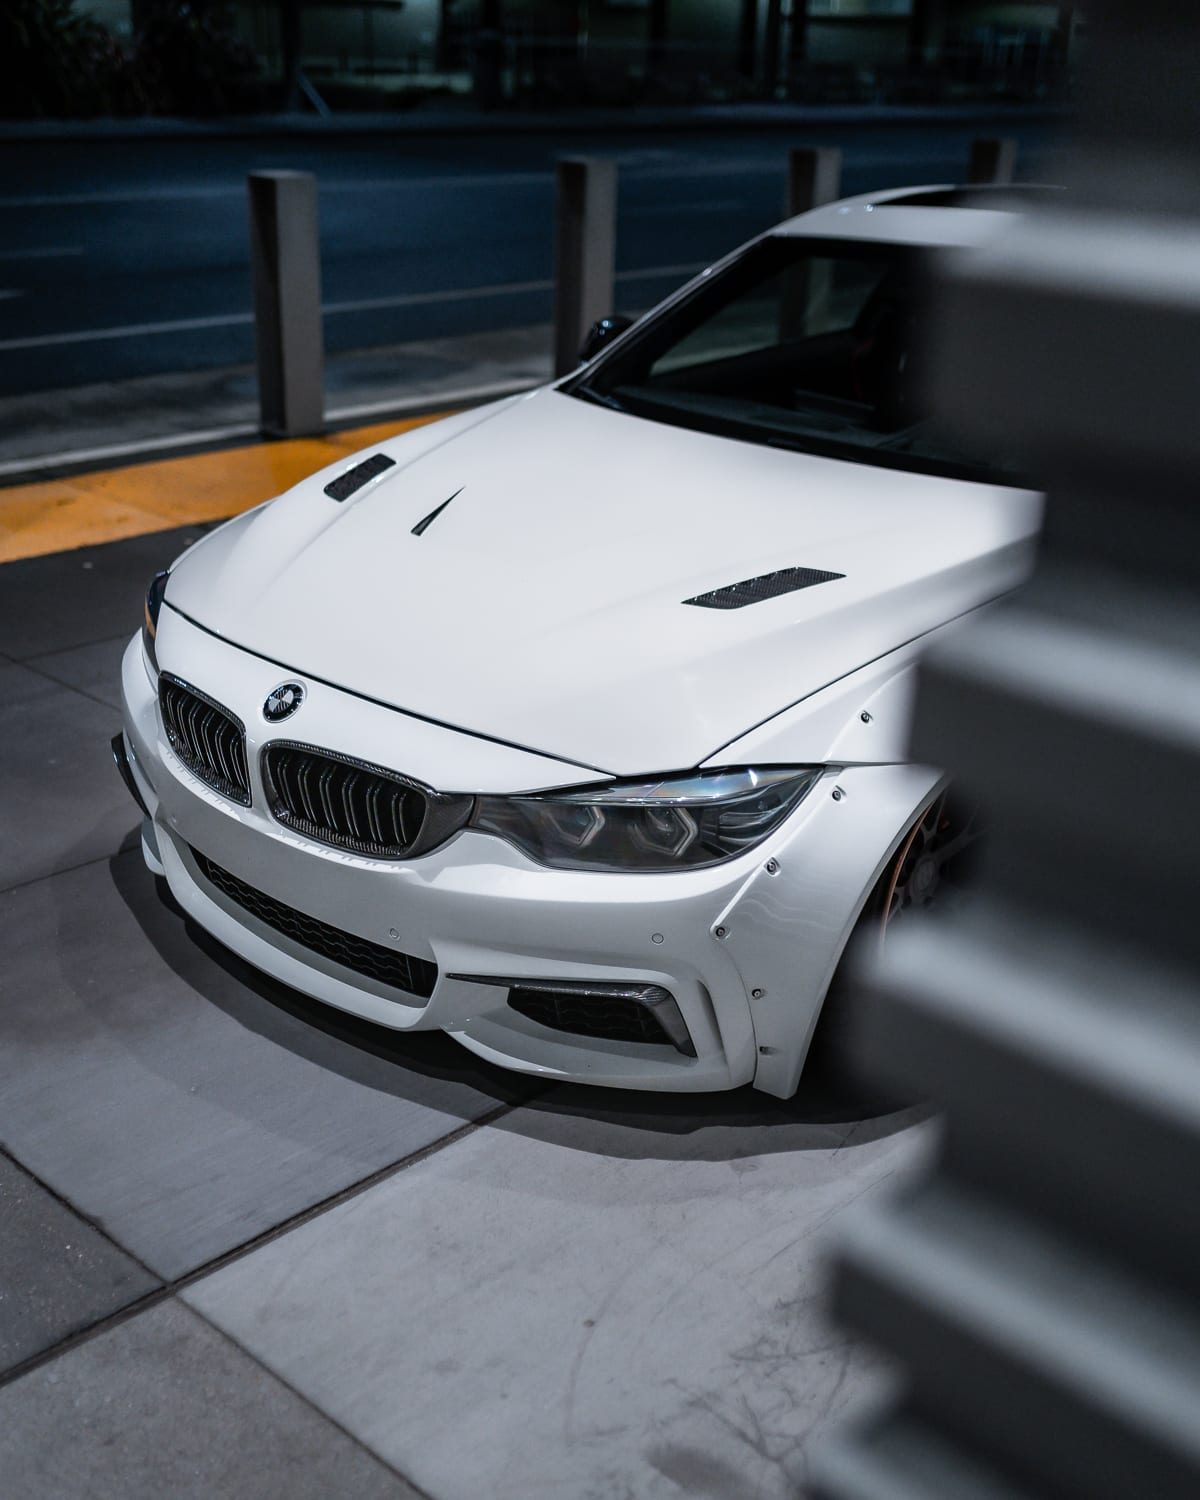 BMW 4series (F32, F33, 435i, 440i) SR66 wide body kit